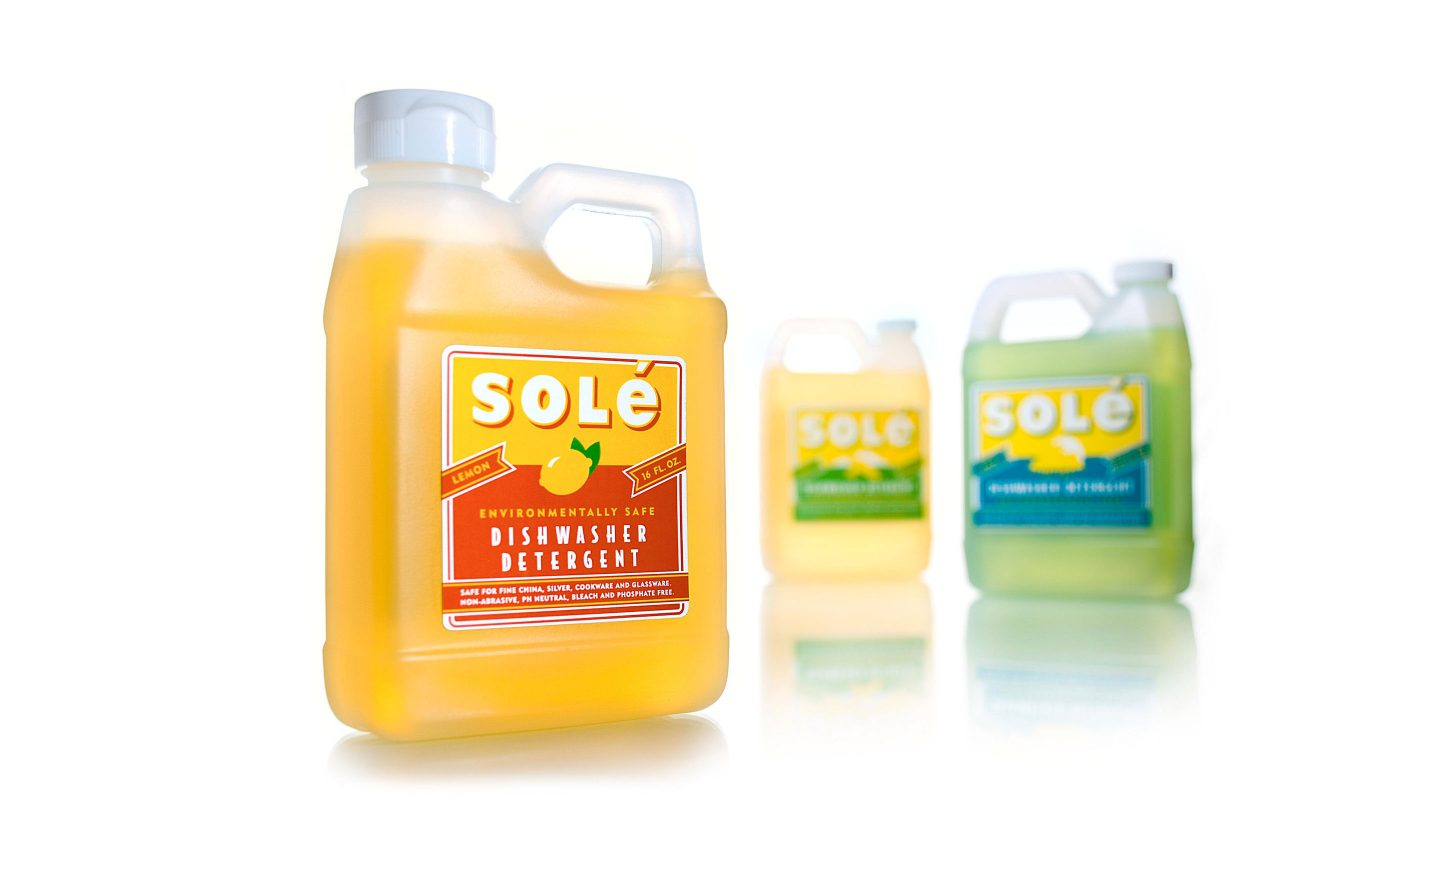 Solé Detergent Design & Package Graphics